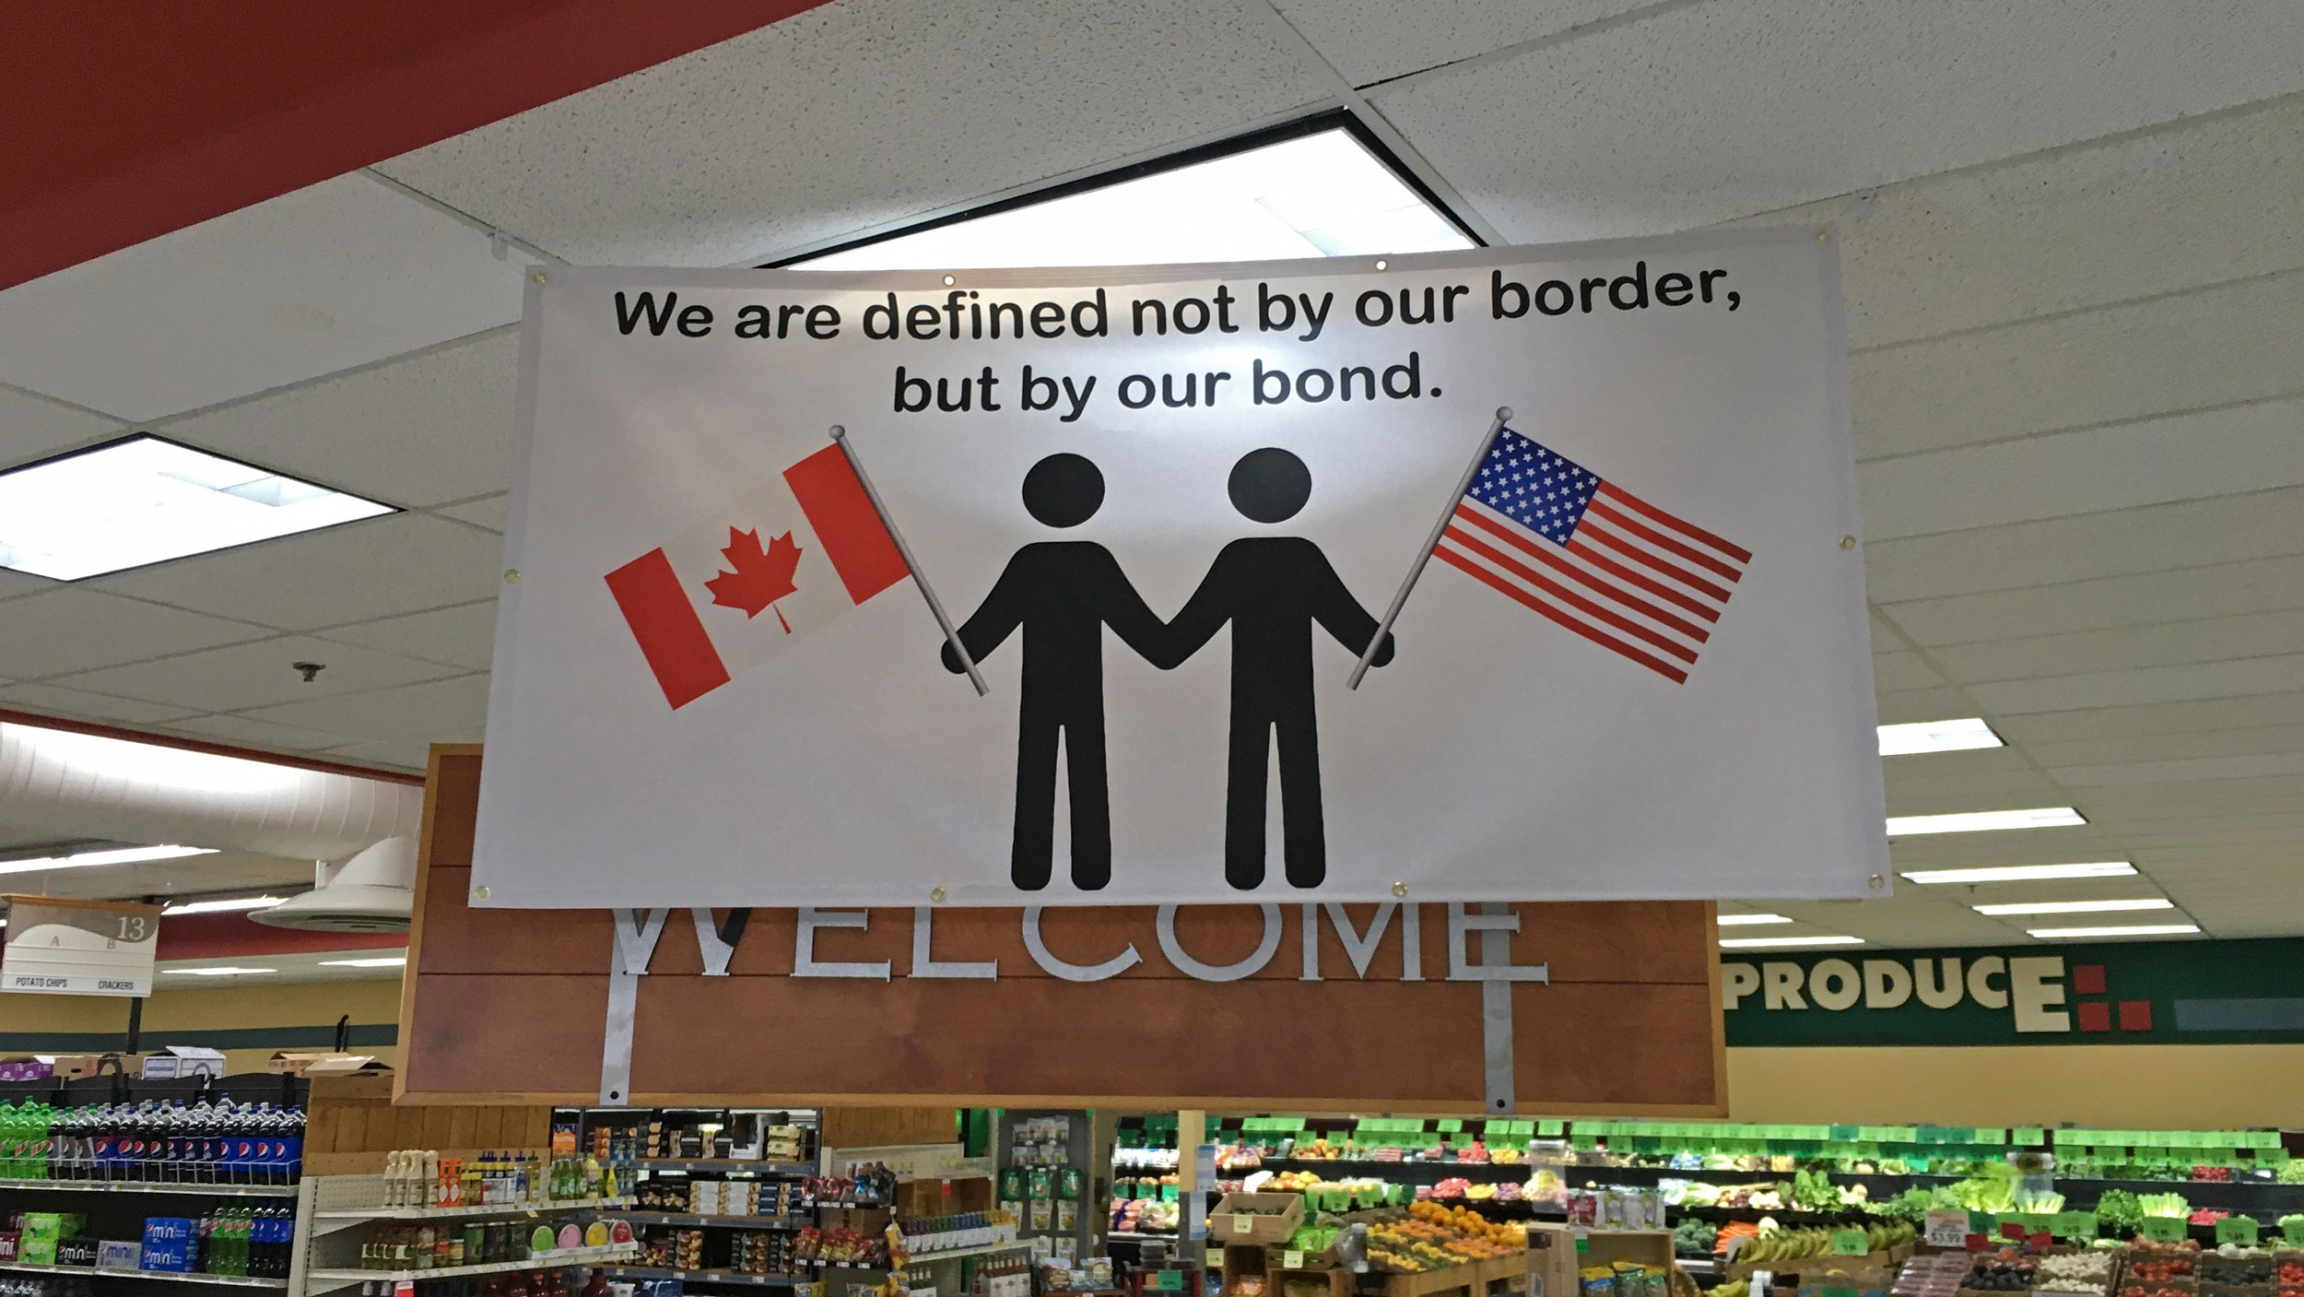 Several businesses in Point Roberts display this sign of solidarity, seen here inside Point Roberts International Marketplace.